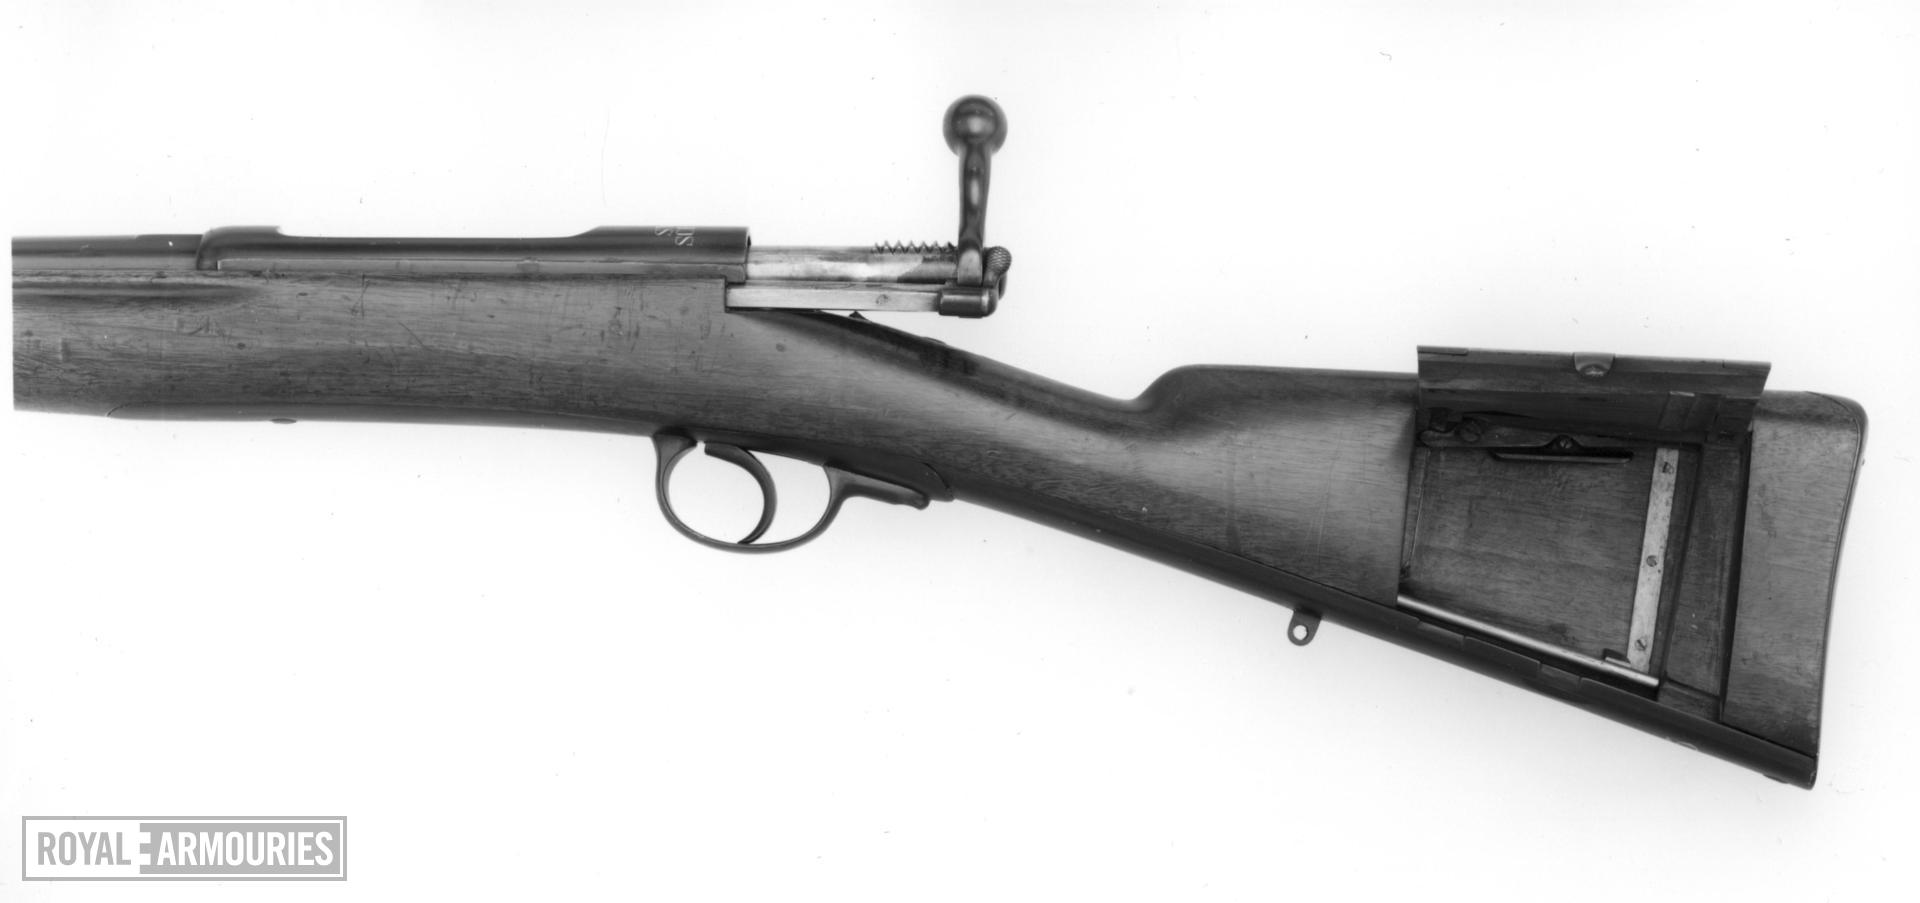 Centrefire bolt-action magazine rifle - Model 1883